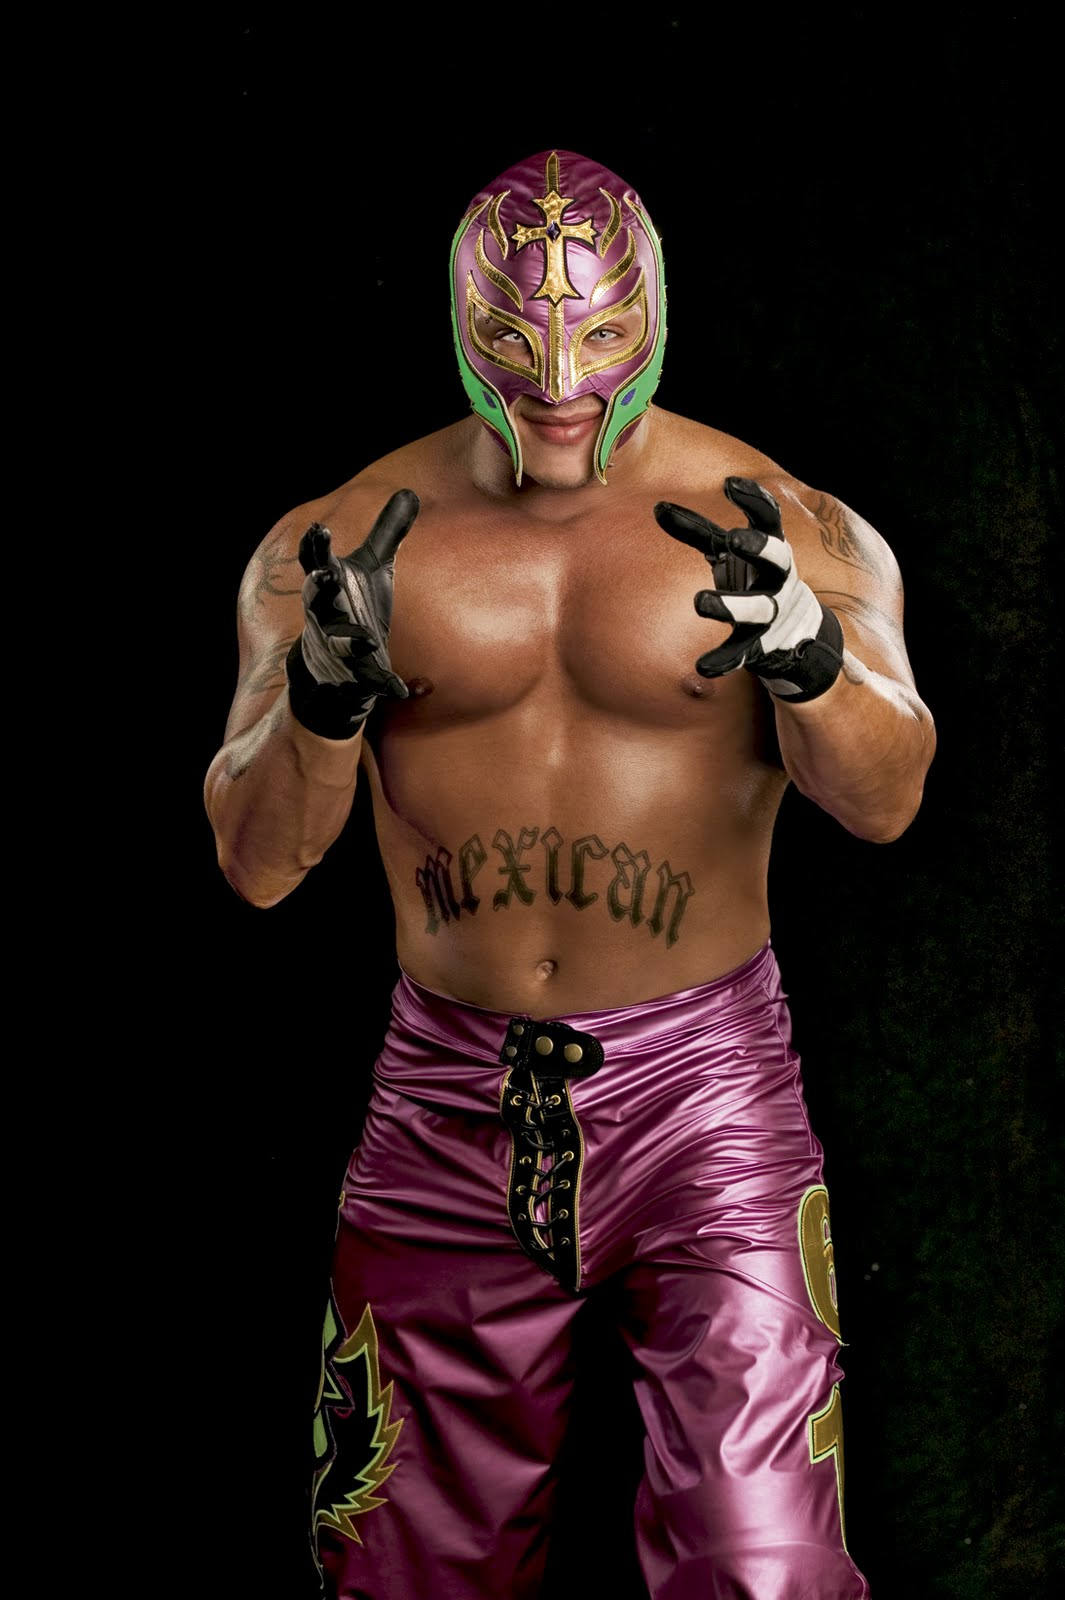 Rey Mysterio Wallpapers | Beautiful Cool Wallpapers